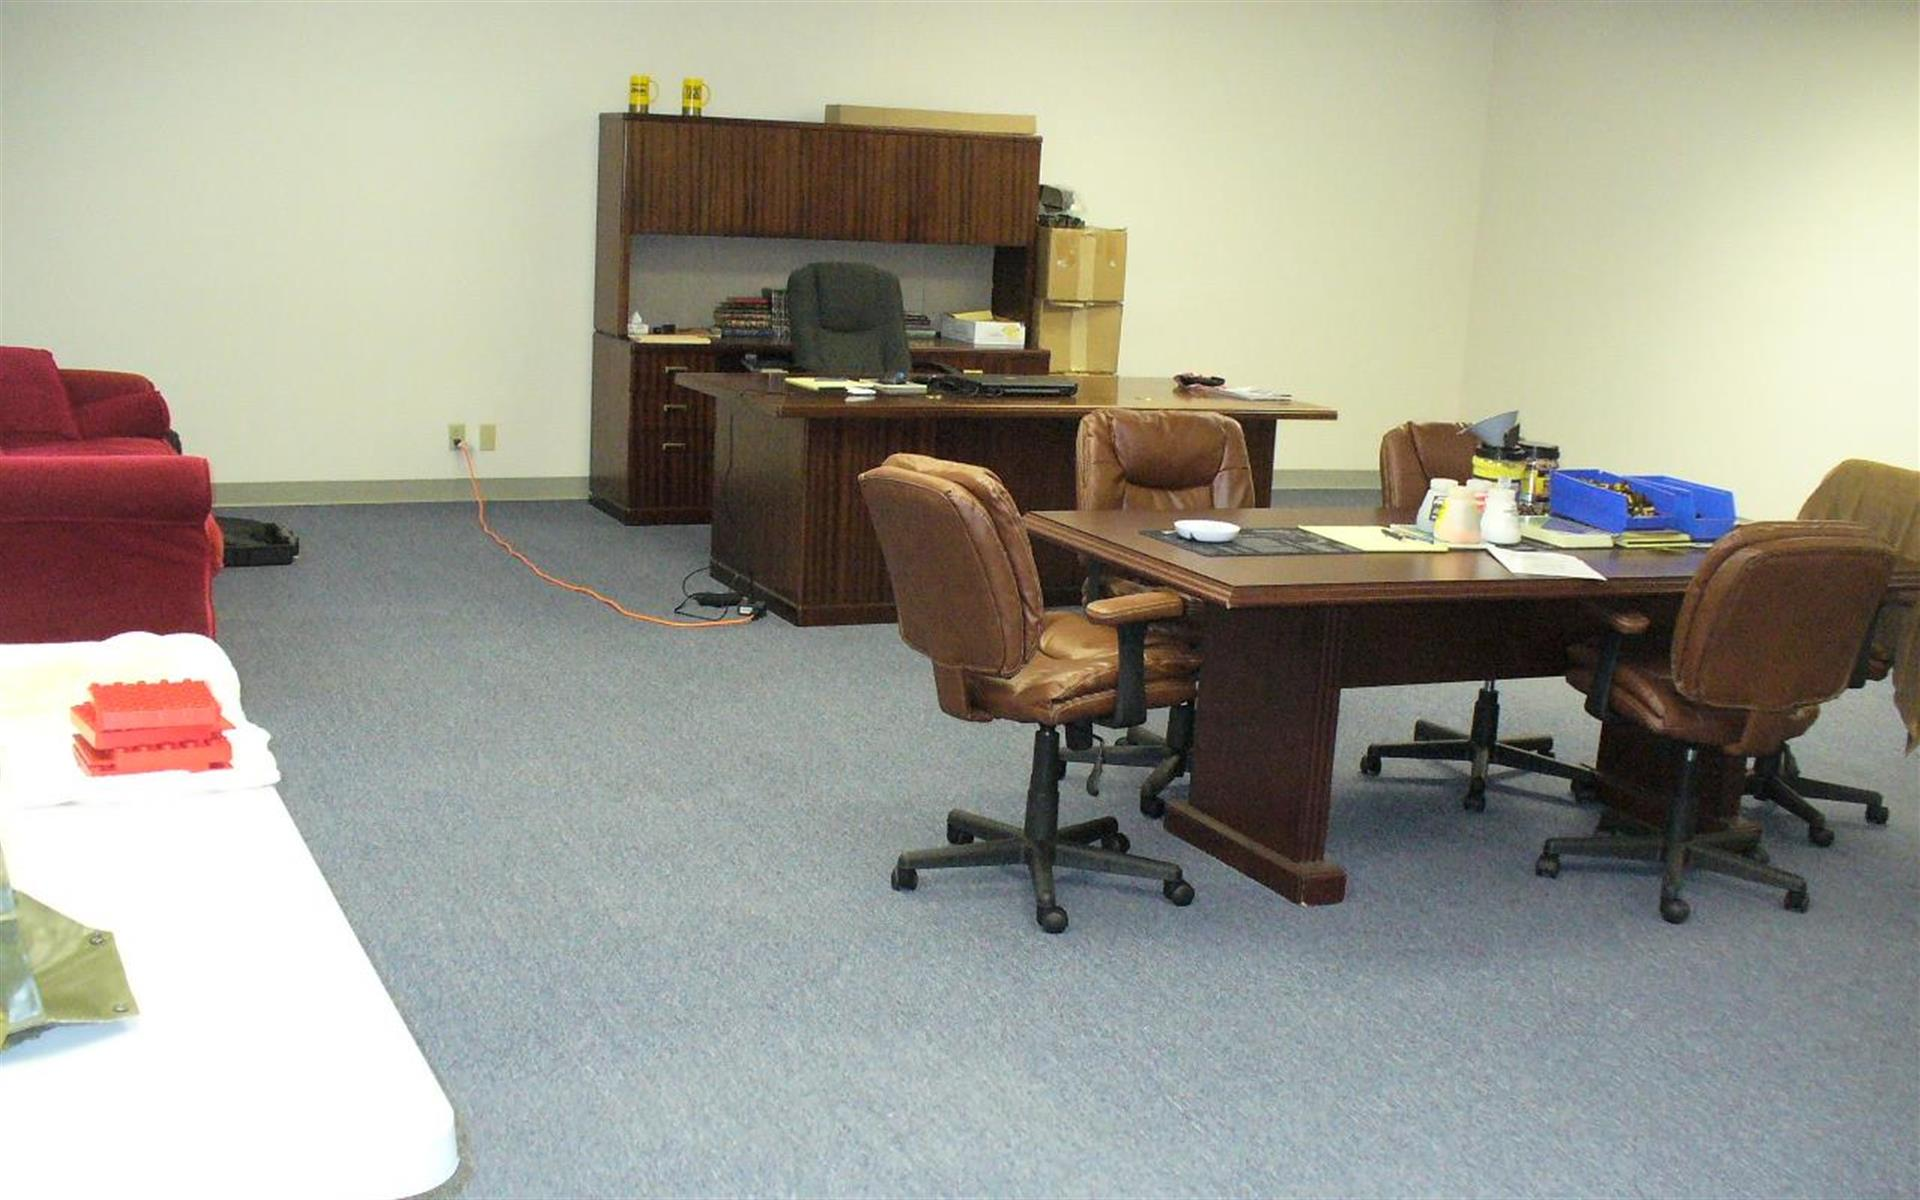 Discount Fuse, Inc. - Open meeting space w/ Desk & Conf. Table